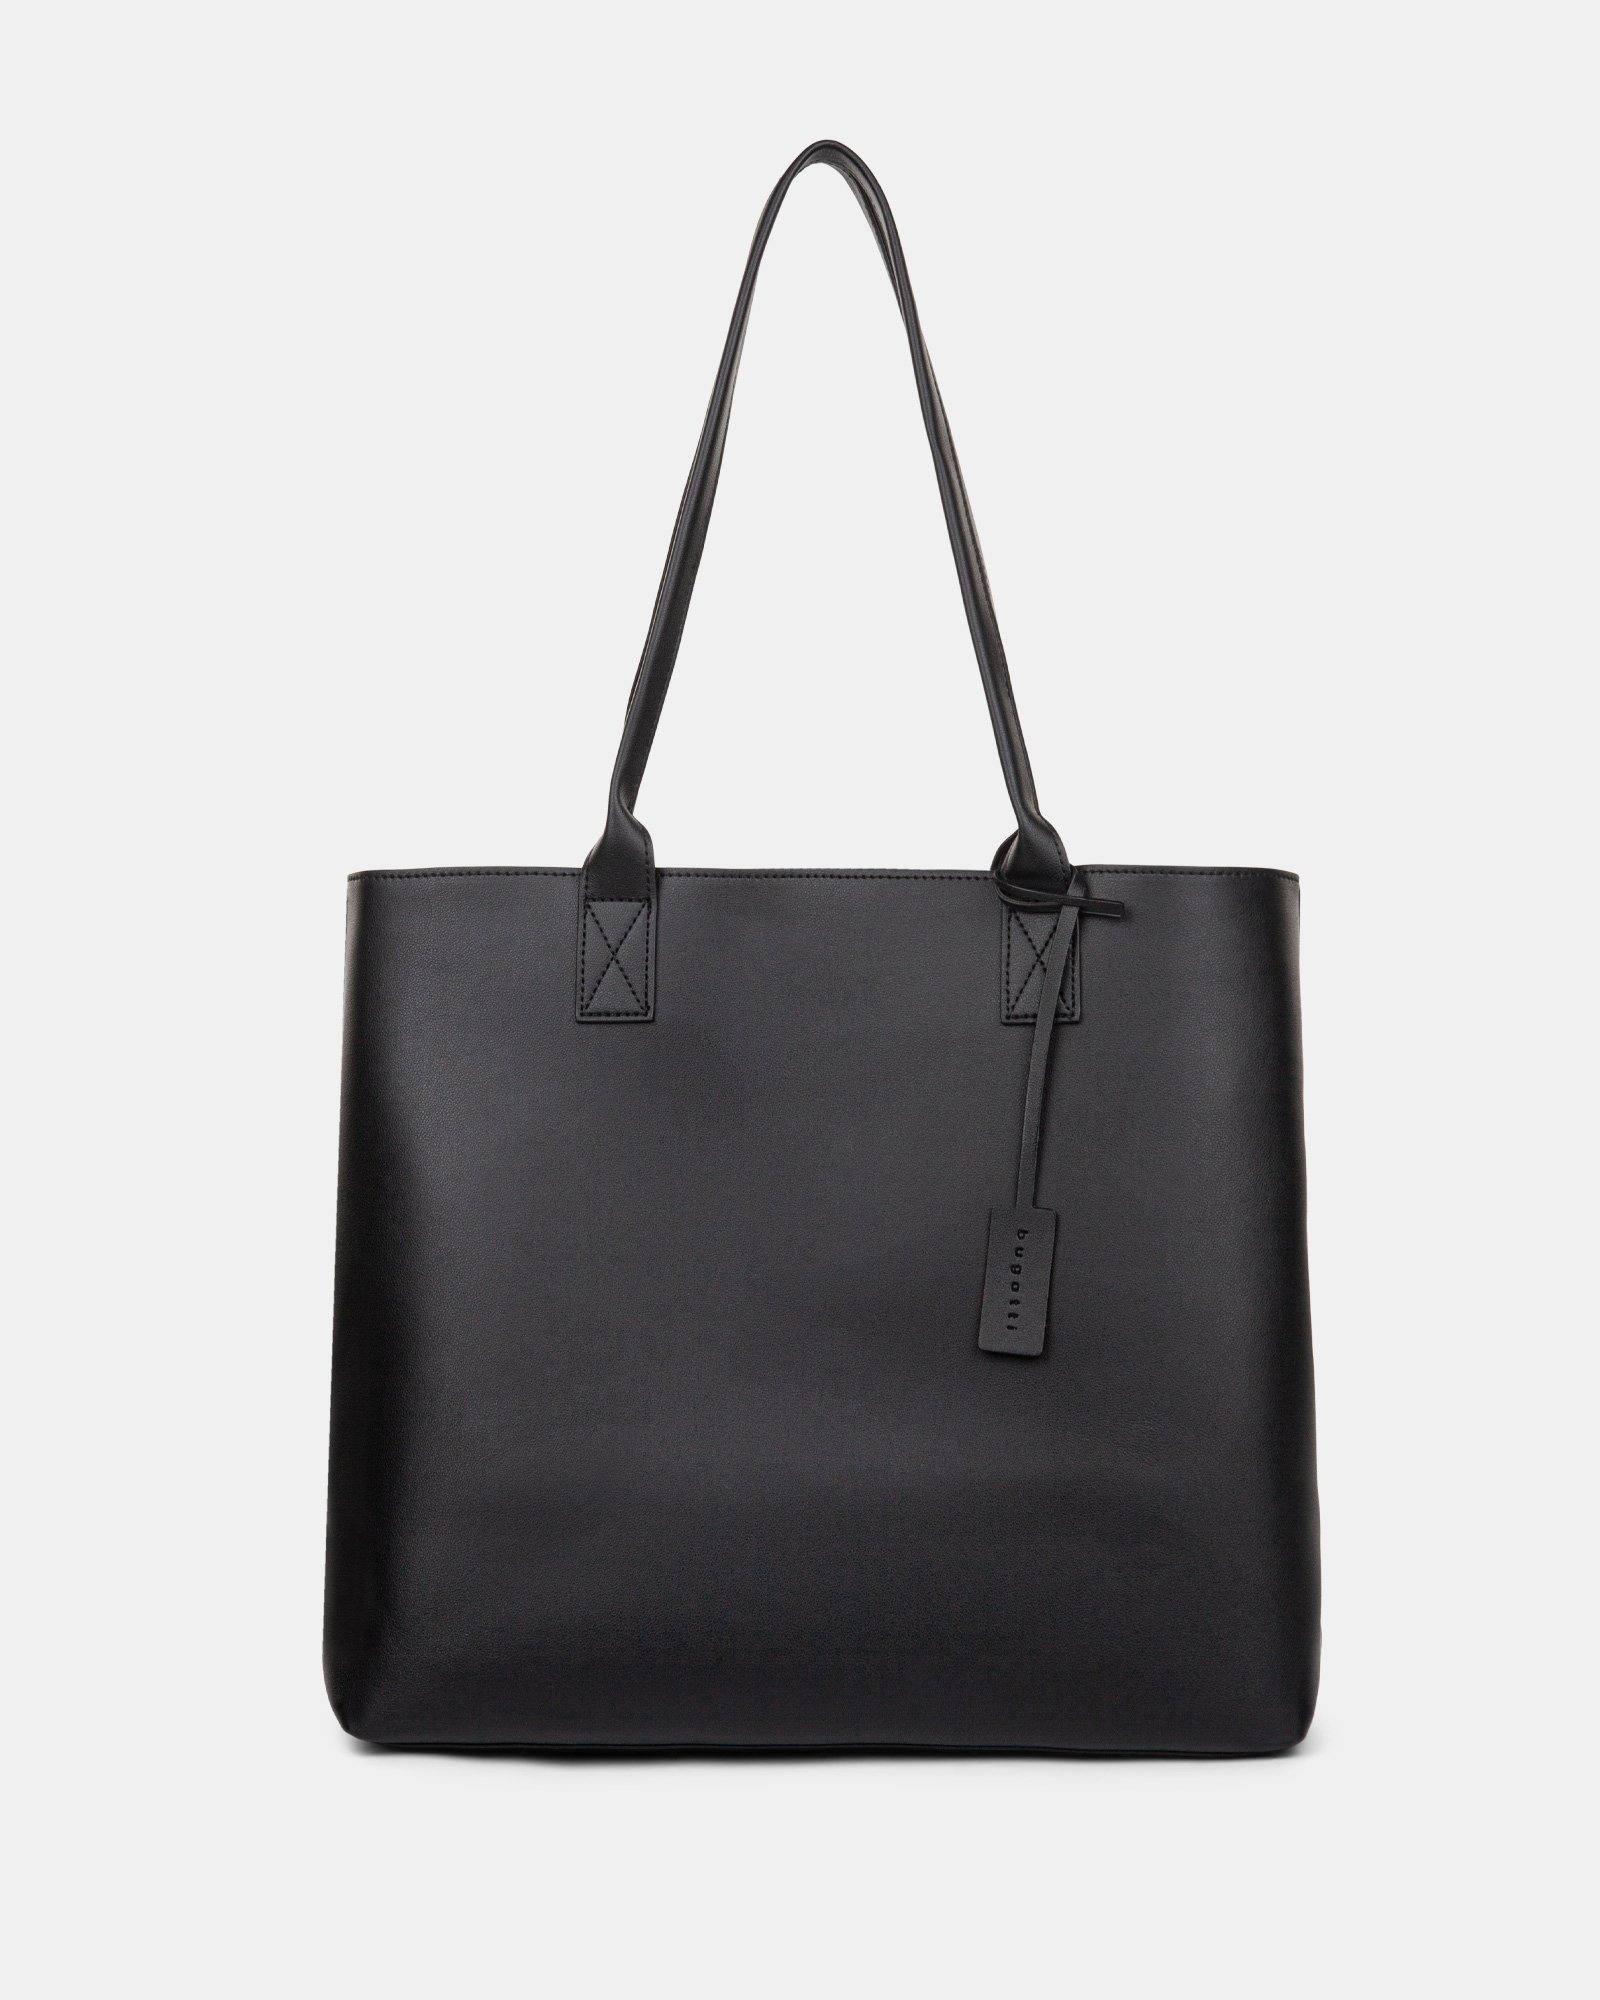 """PURE - VEGAN LEATHER BUSINESS TOTE BAG for 14"""" laptops or tablet - Black - Bugatti - Zoom"""